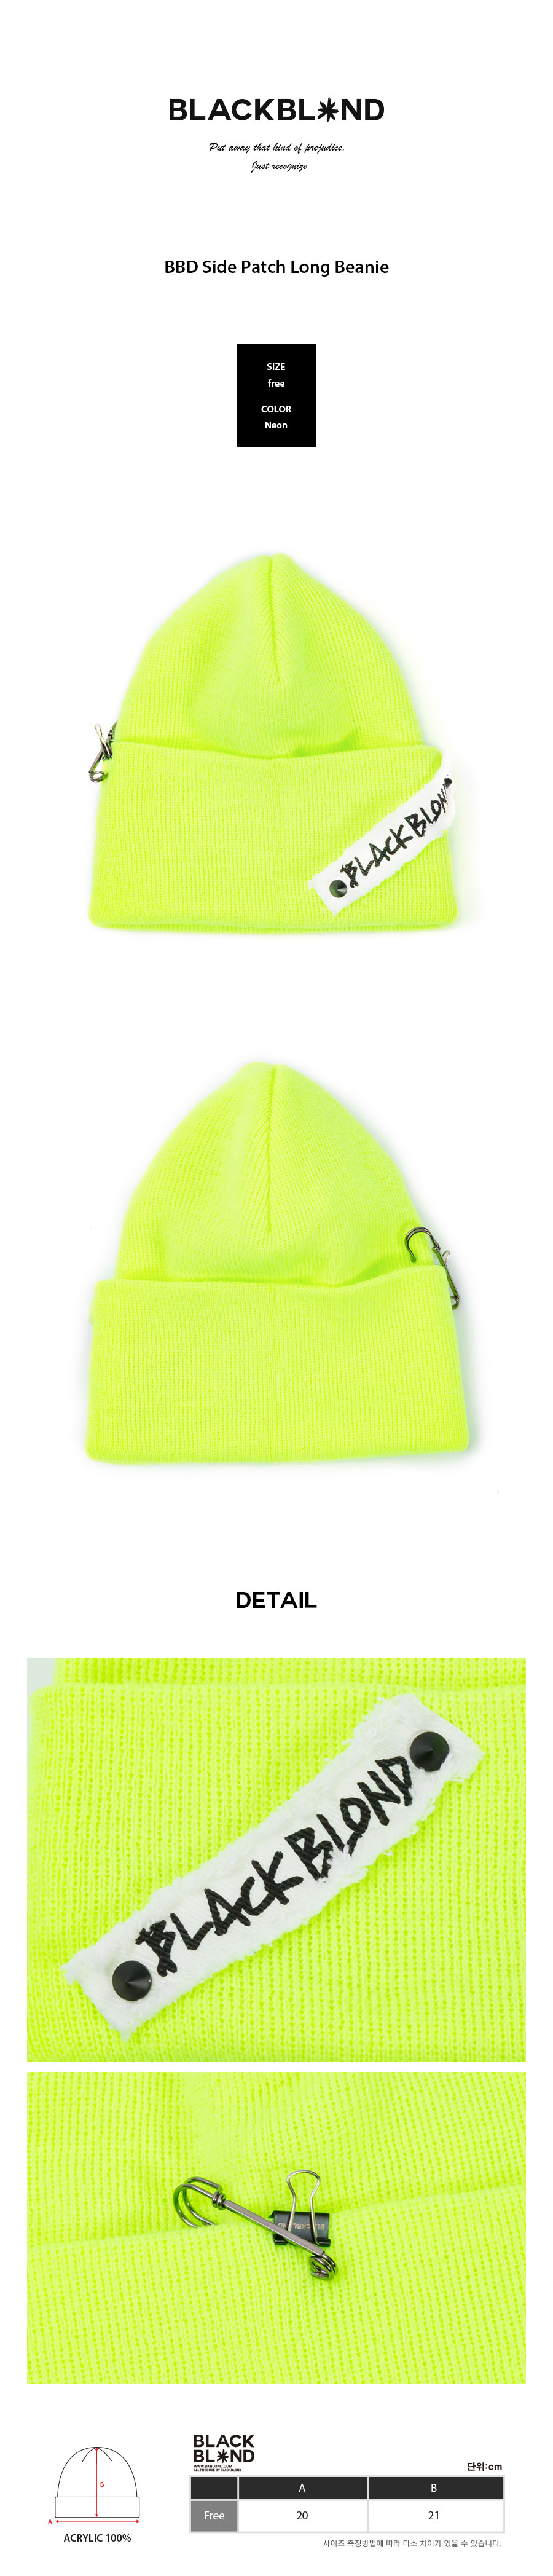 BBD-Side-Patch-Long-Beanie-%28Neon%29.jpg